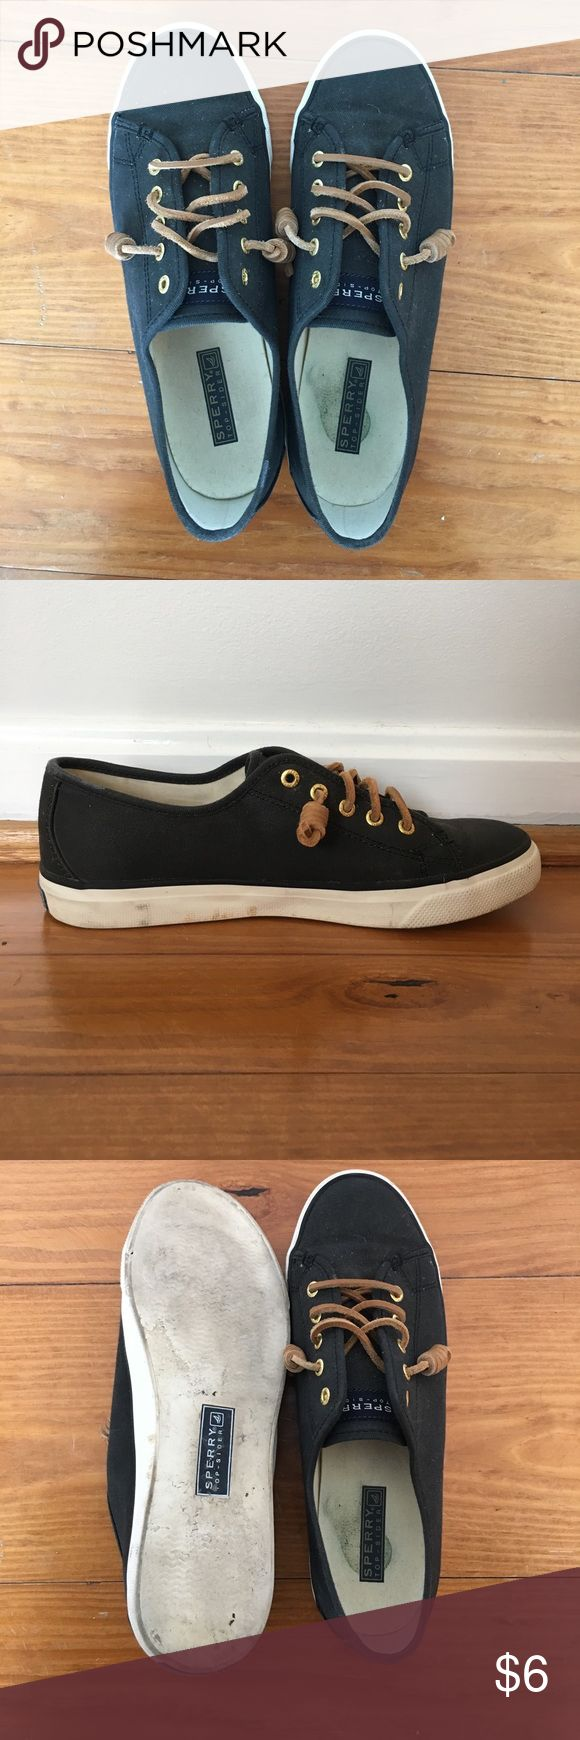 Sperry top-sider shoes in black Sperry Top-siders in black. Worn a handful of times. Size 8M. Sperry Top-Sider Shoes Sneakers